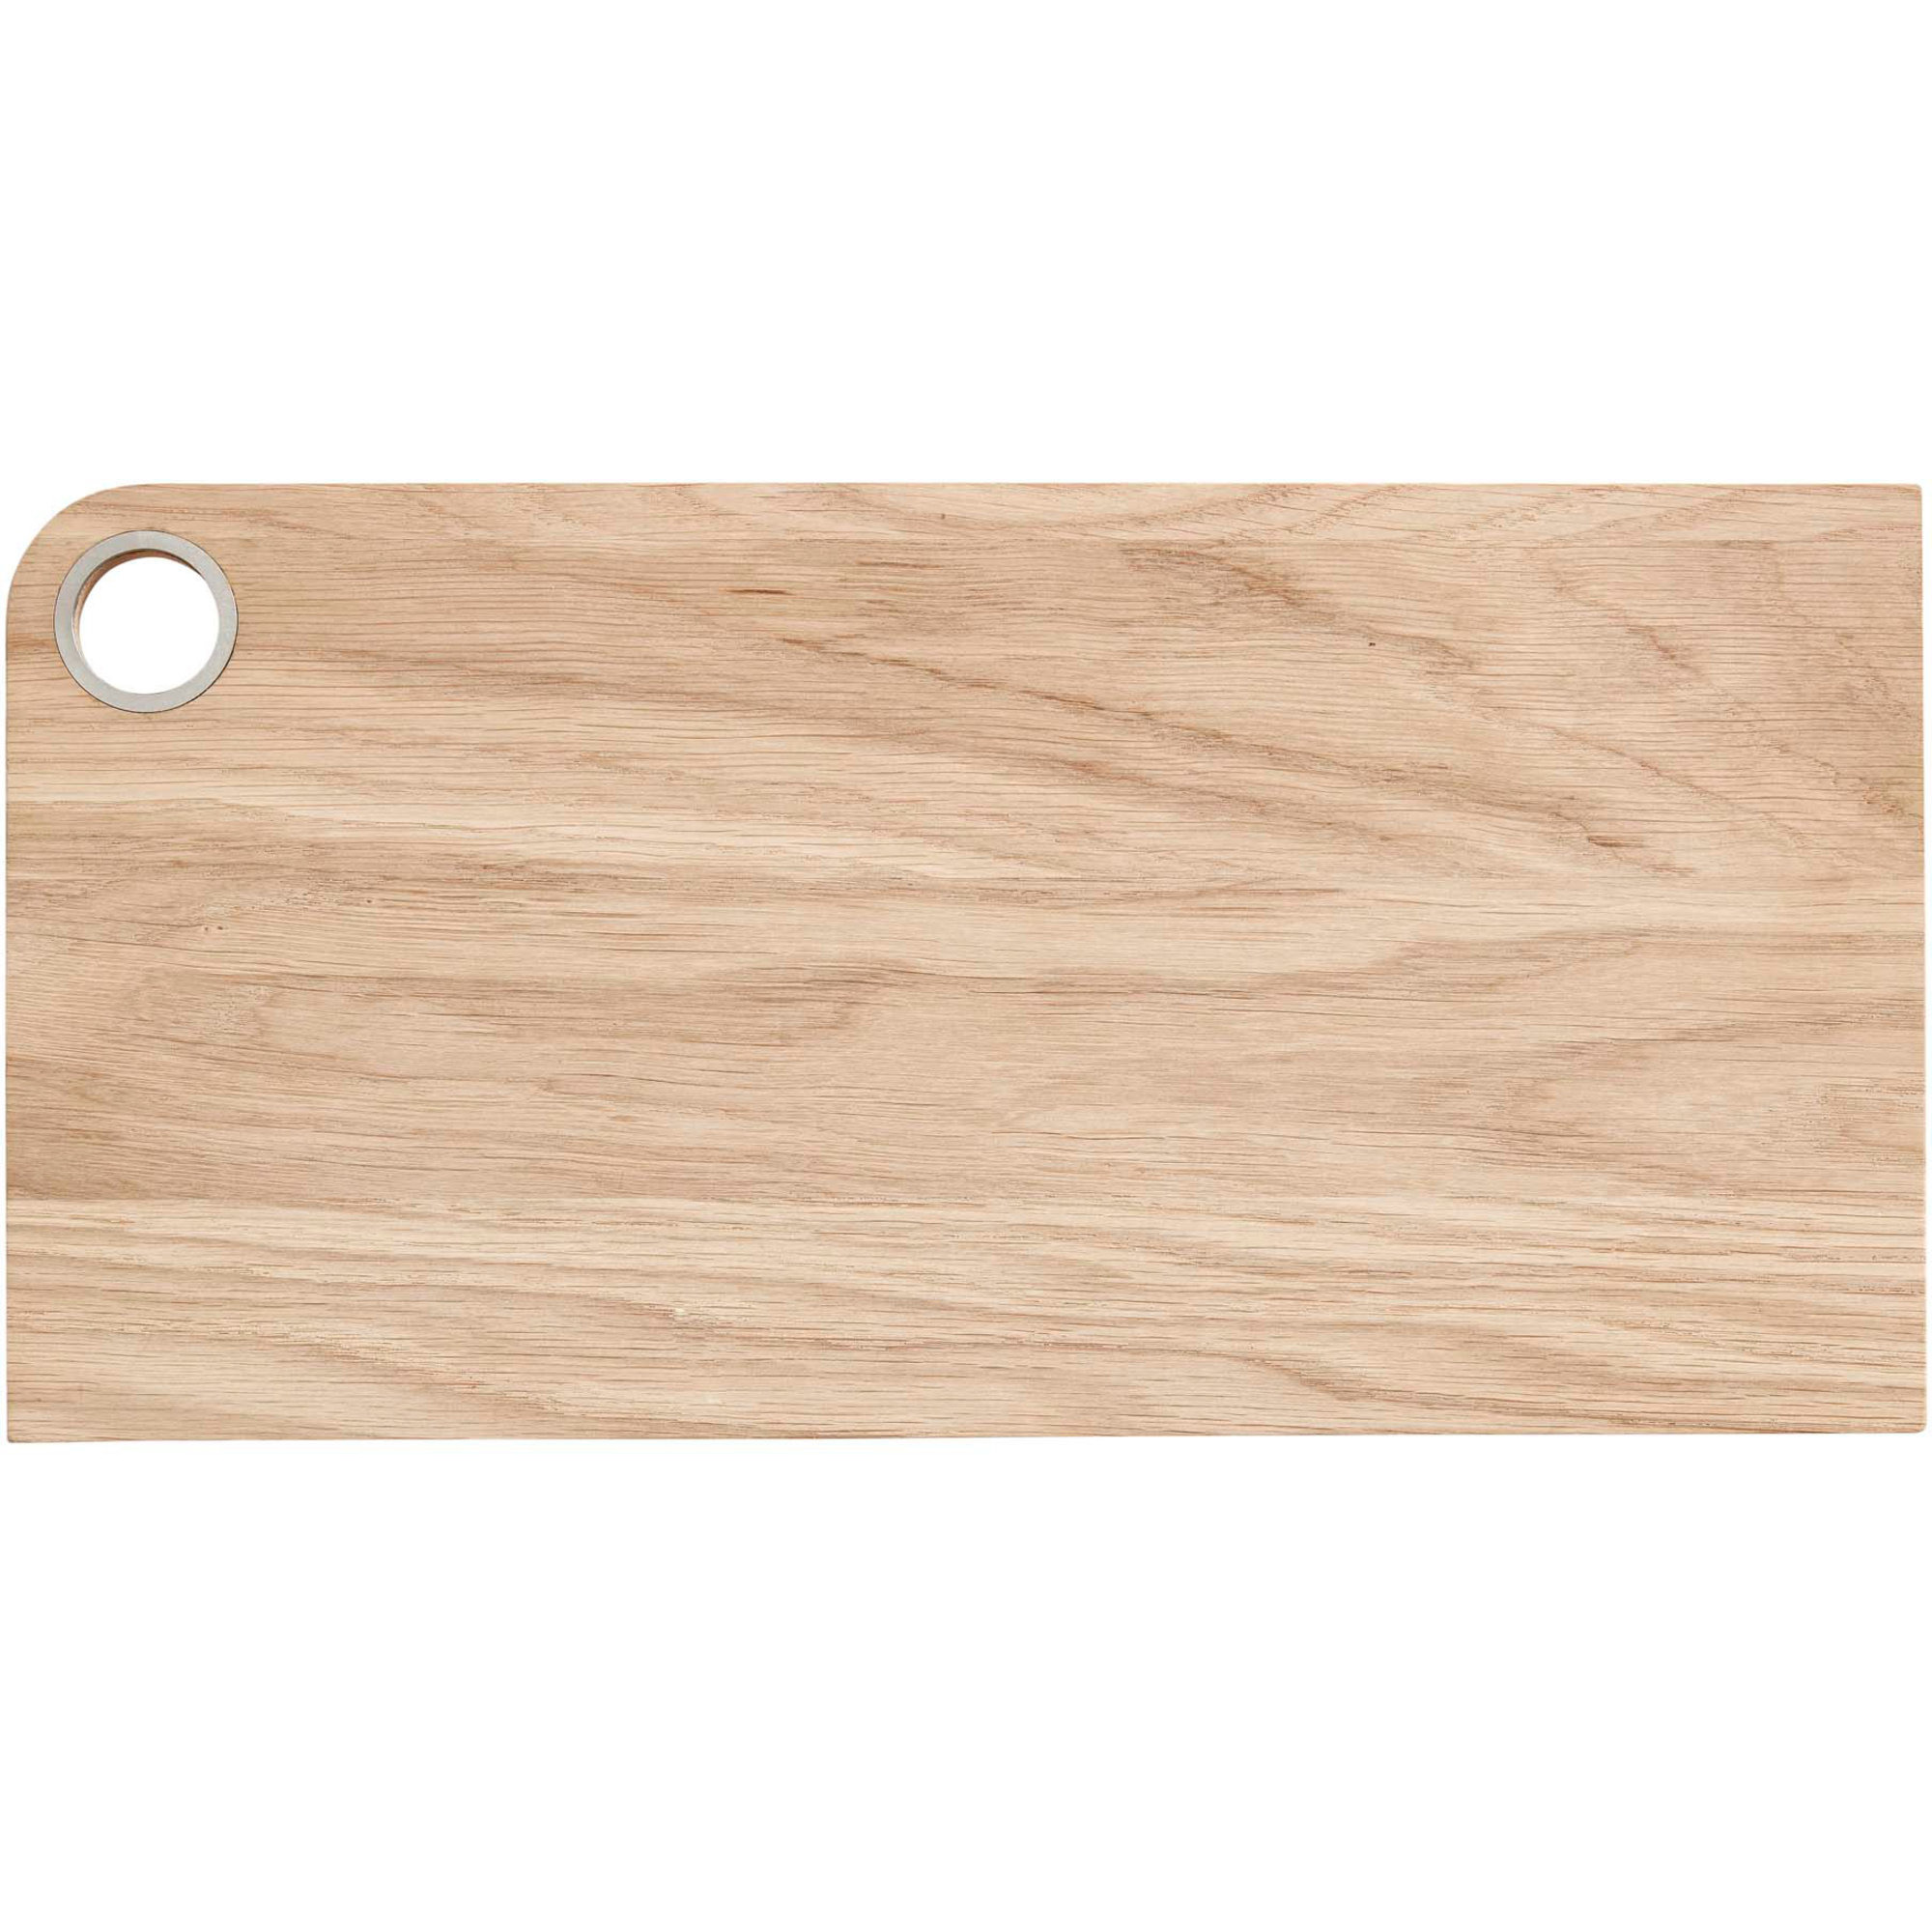 Andersen Furniture Servingboard No.2 40 x 25 cm Large Oak